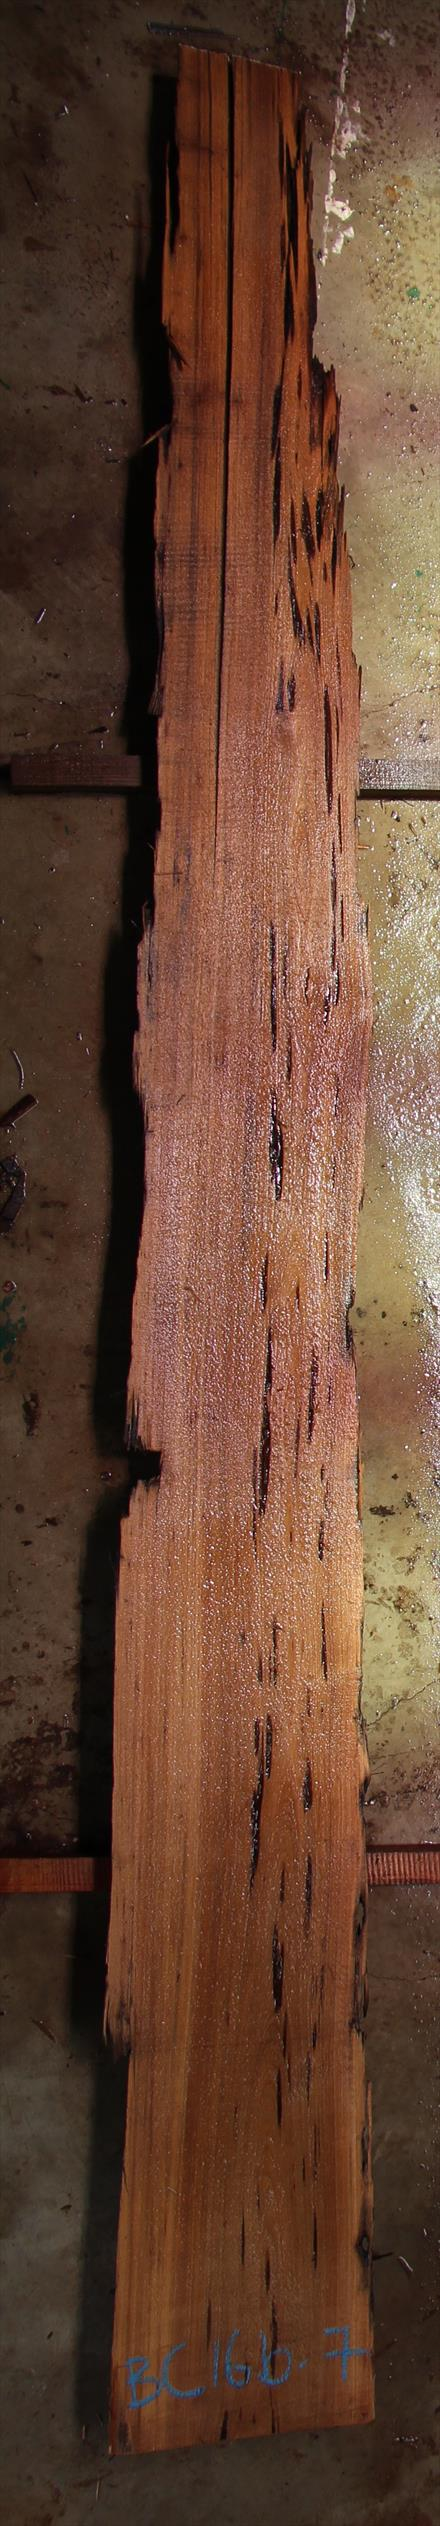 Buried Cypress Slab BC016b-07